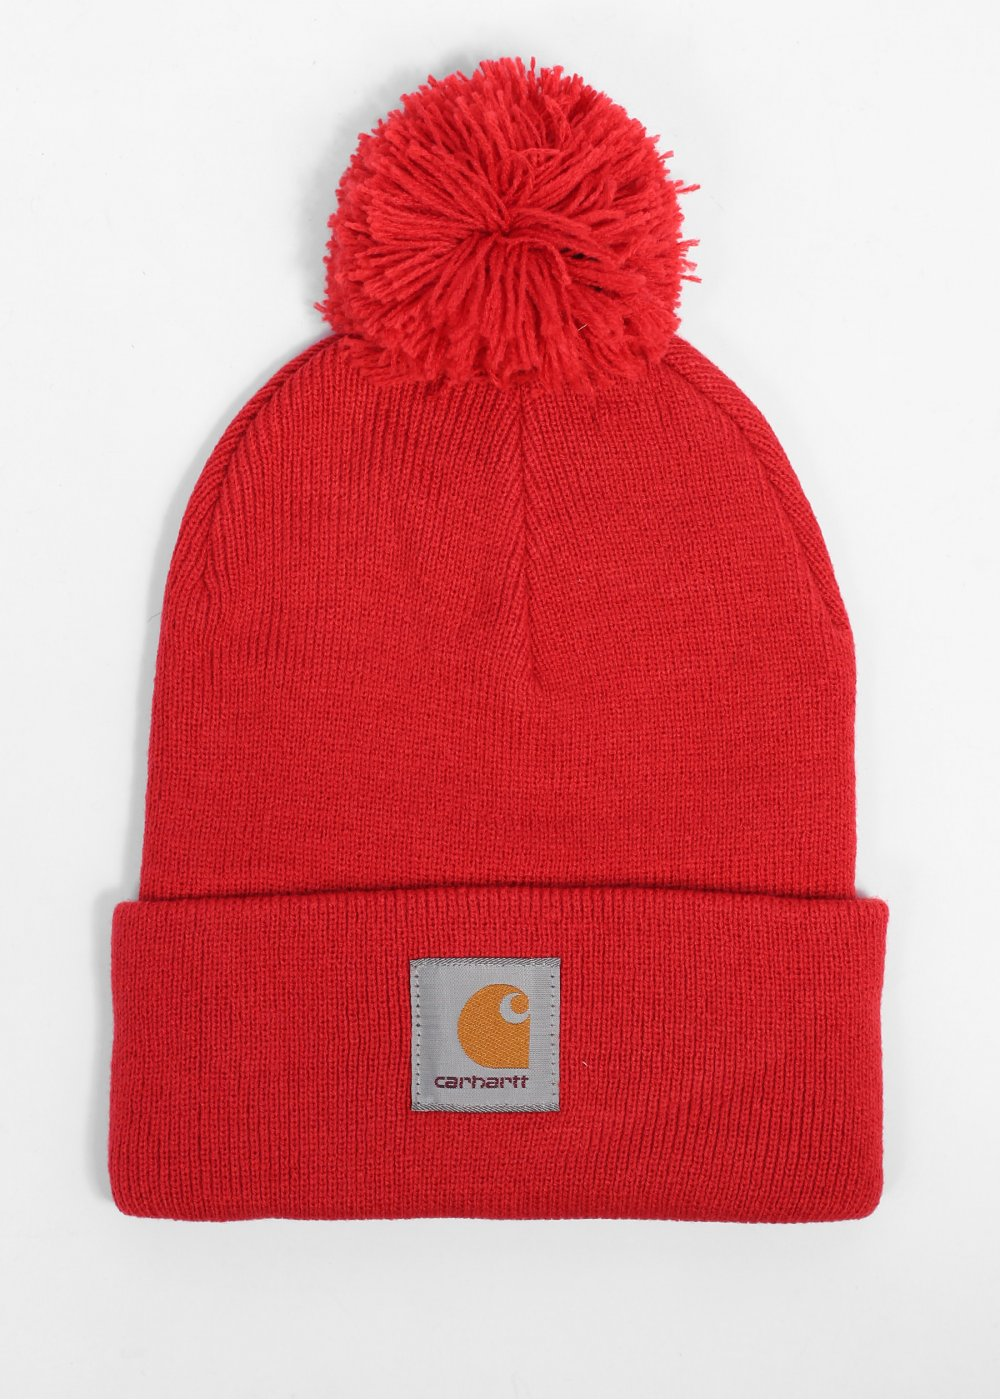 Carhartt Bobble Watch Cap Beanie - Blast Red 48efead0d56